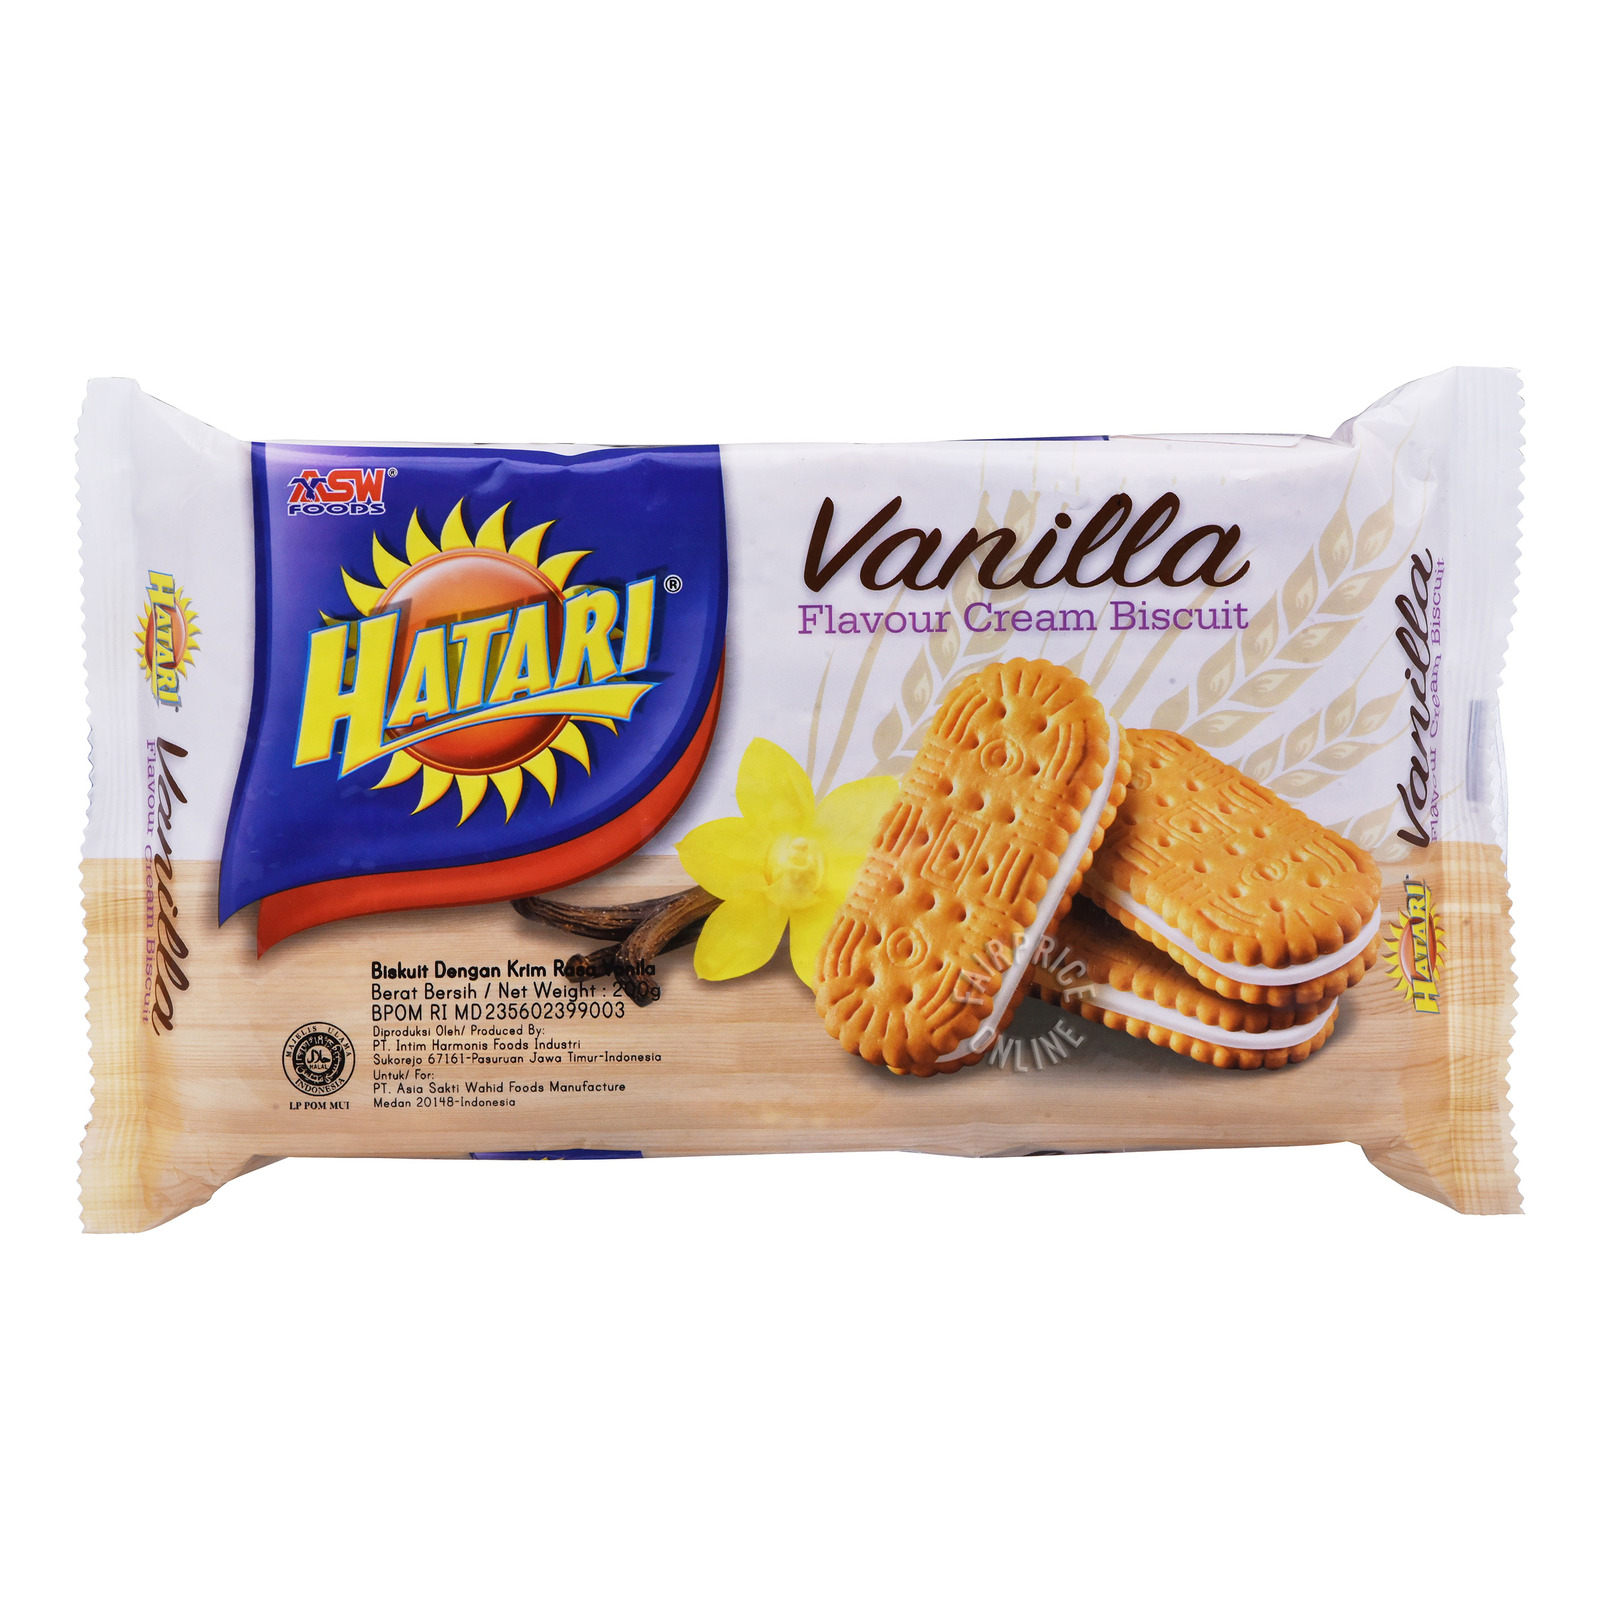 Hatari Cream Biscuits - Vanilla